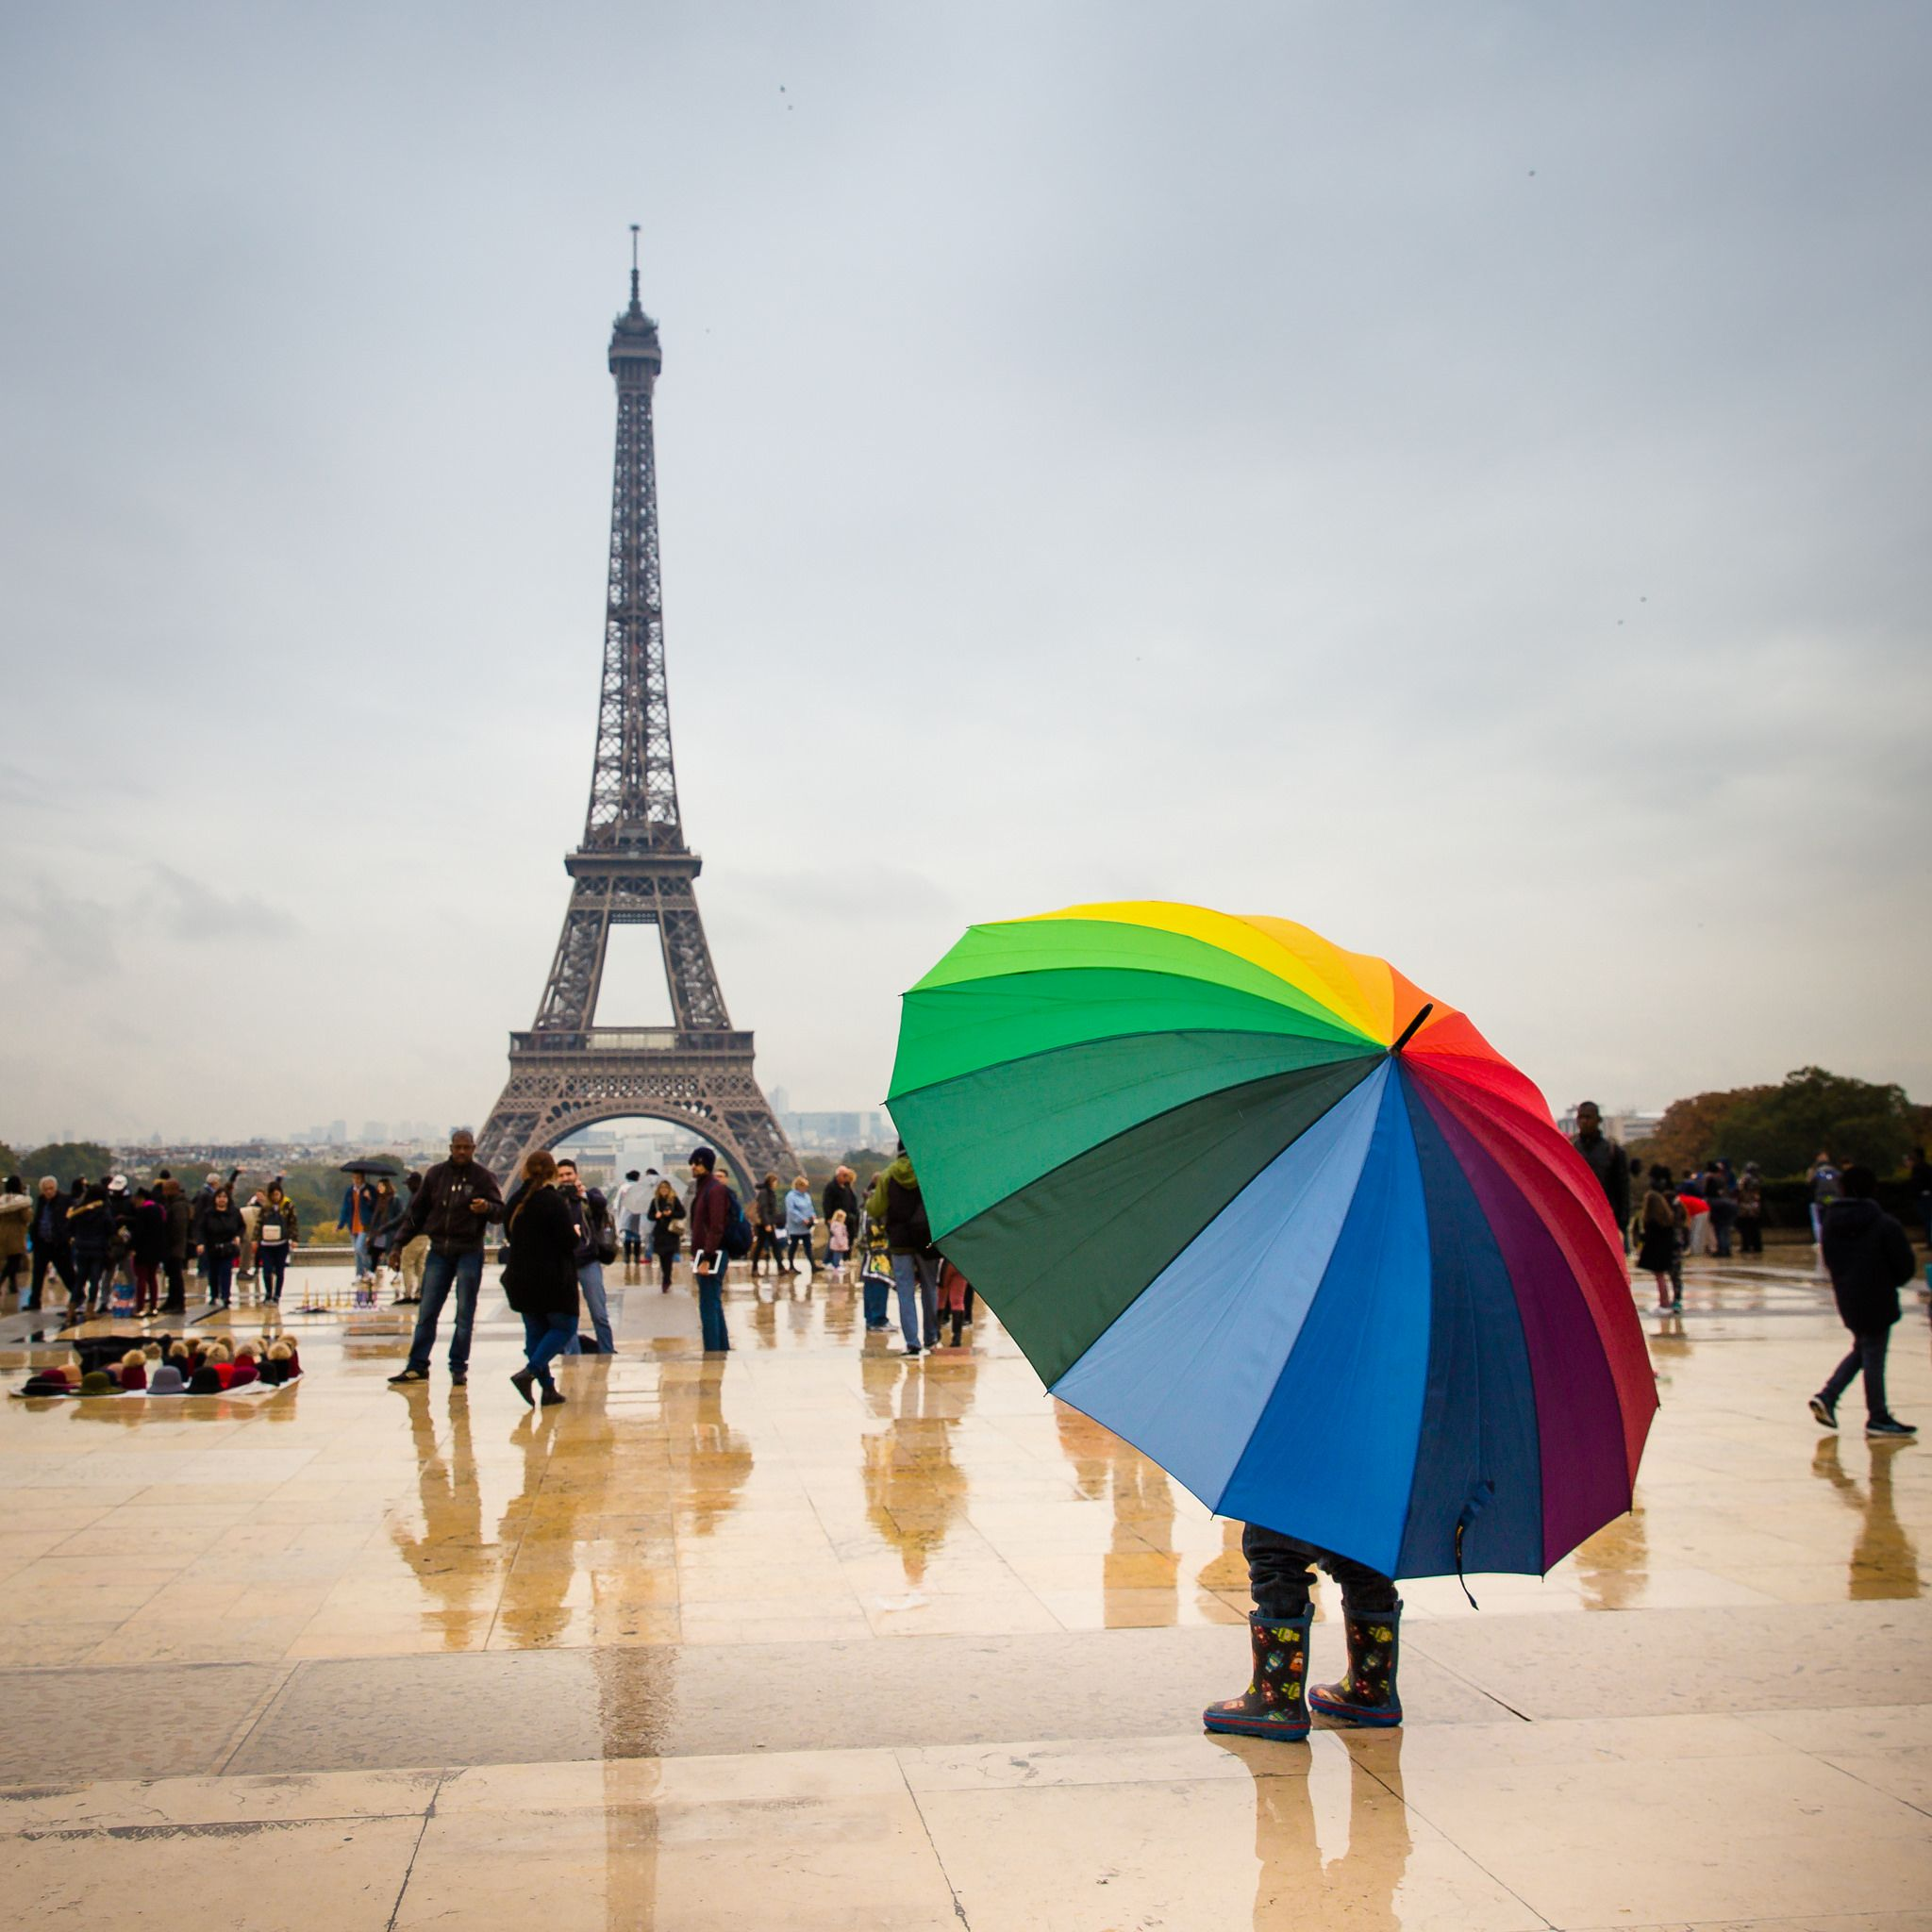 https://flic.kr/p/Nocy5G | Rainy day in Paris | Eiffel tower, rain and colorful umbrella in Paris, France.